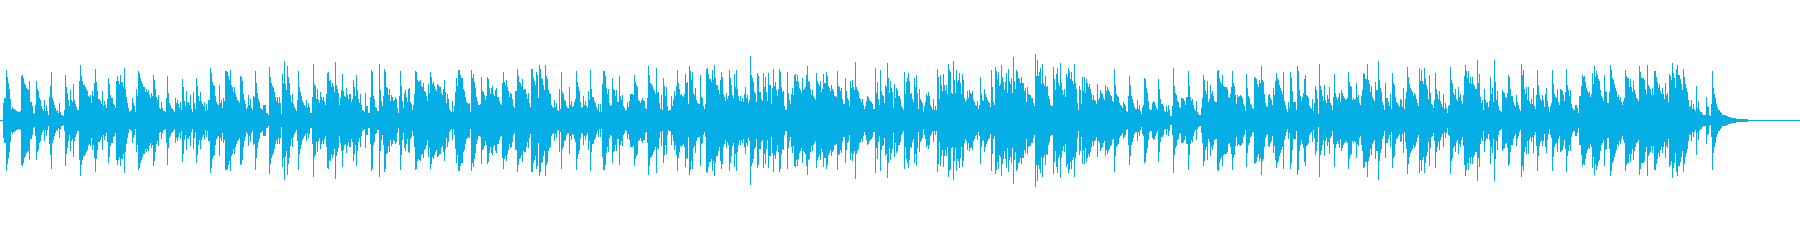 Jazz style Jim Nopedi's reproduced waveform